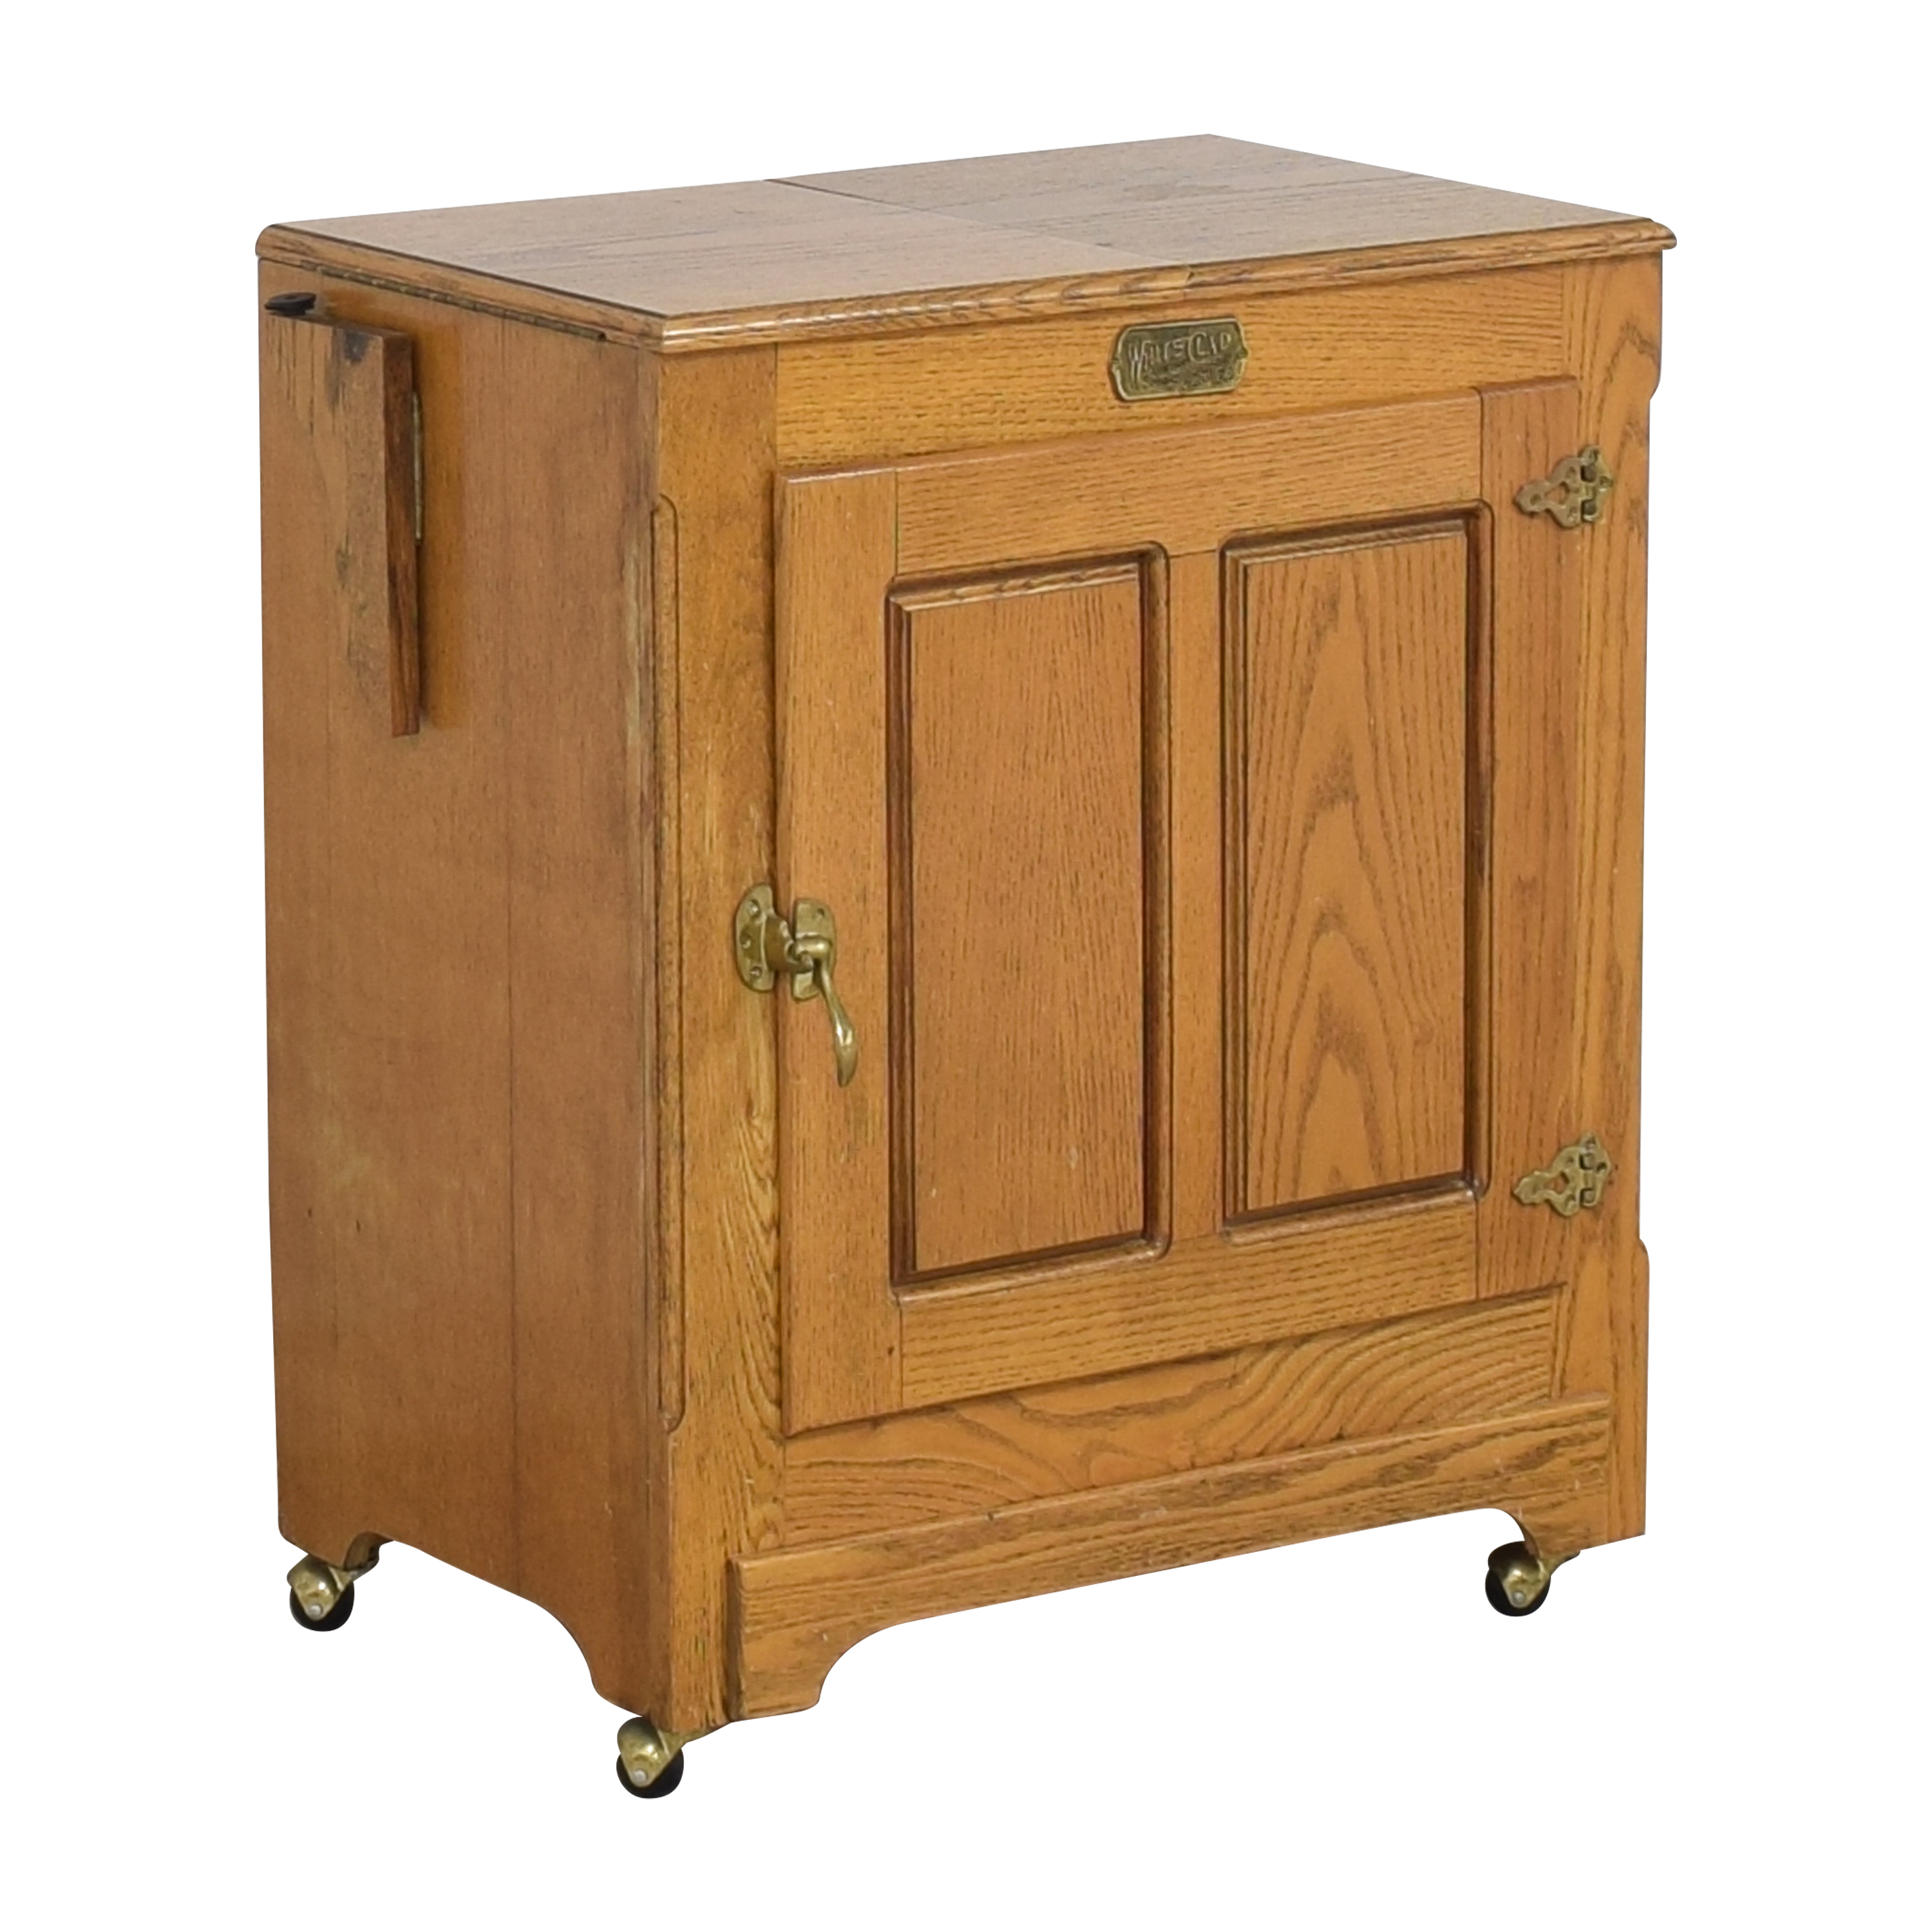 Simmons Hardware Simmons Hardware White Clad Ice Box Wine Cabinet on Casters ct